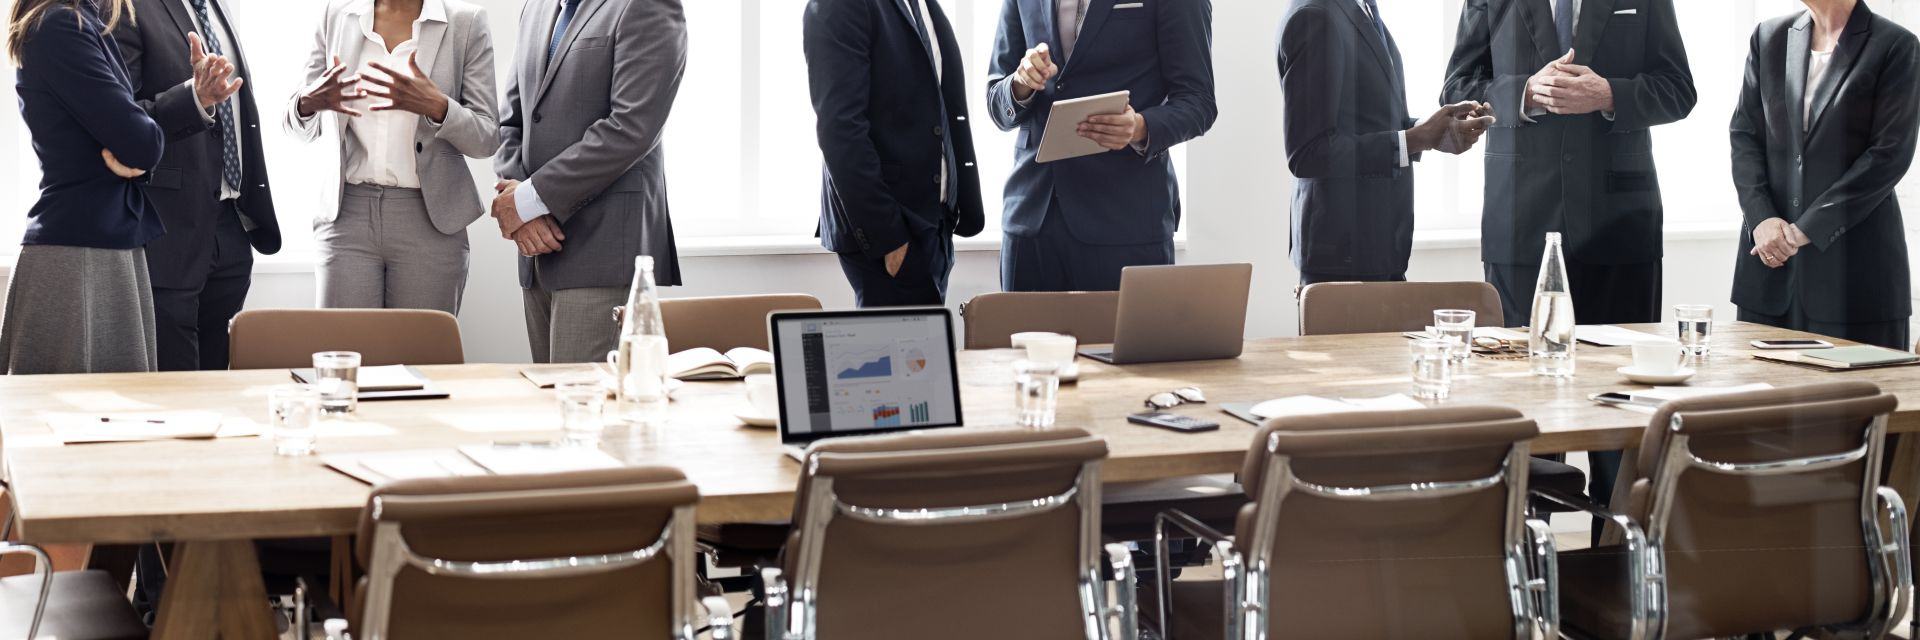 Meeting attendees having breakout discussions next to a conference table